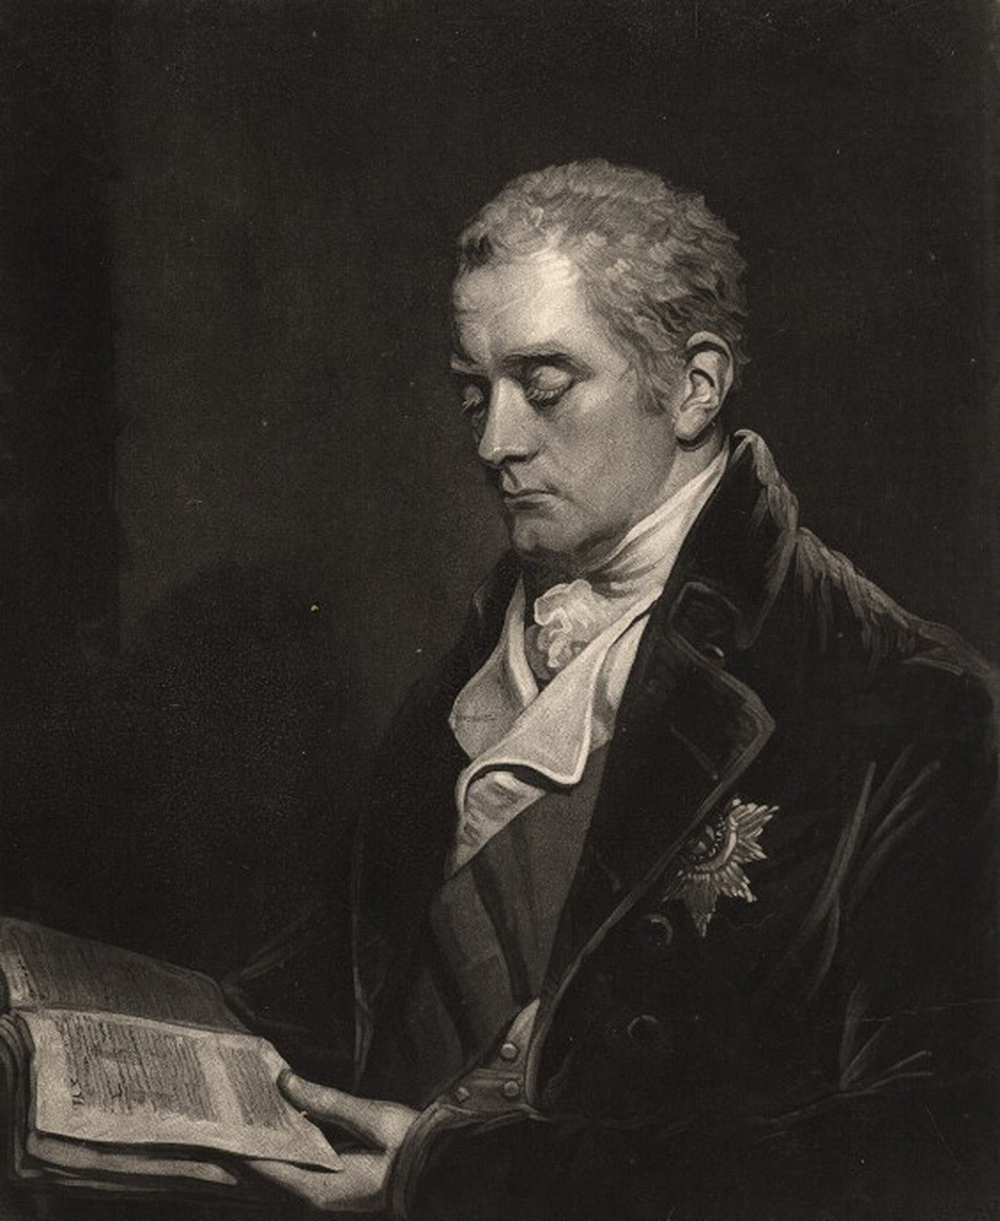 George John Spencer, 2nd Earl Spencer, by Henry Meyer, 1812. © National Portrait Gallery, London.